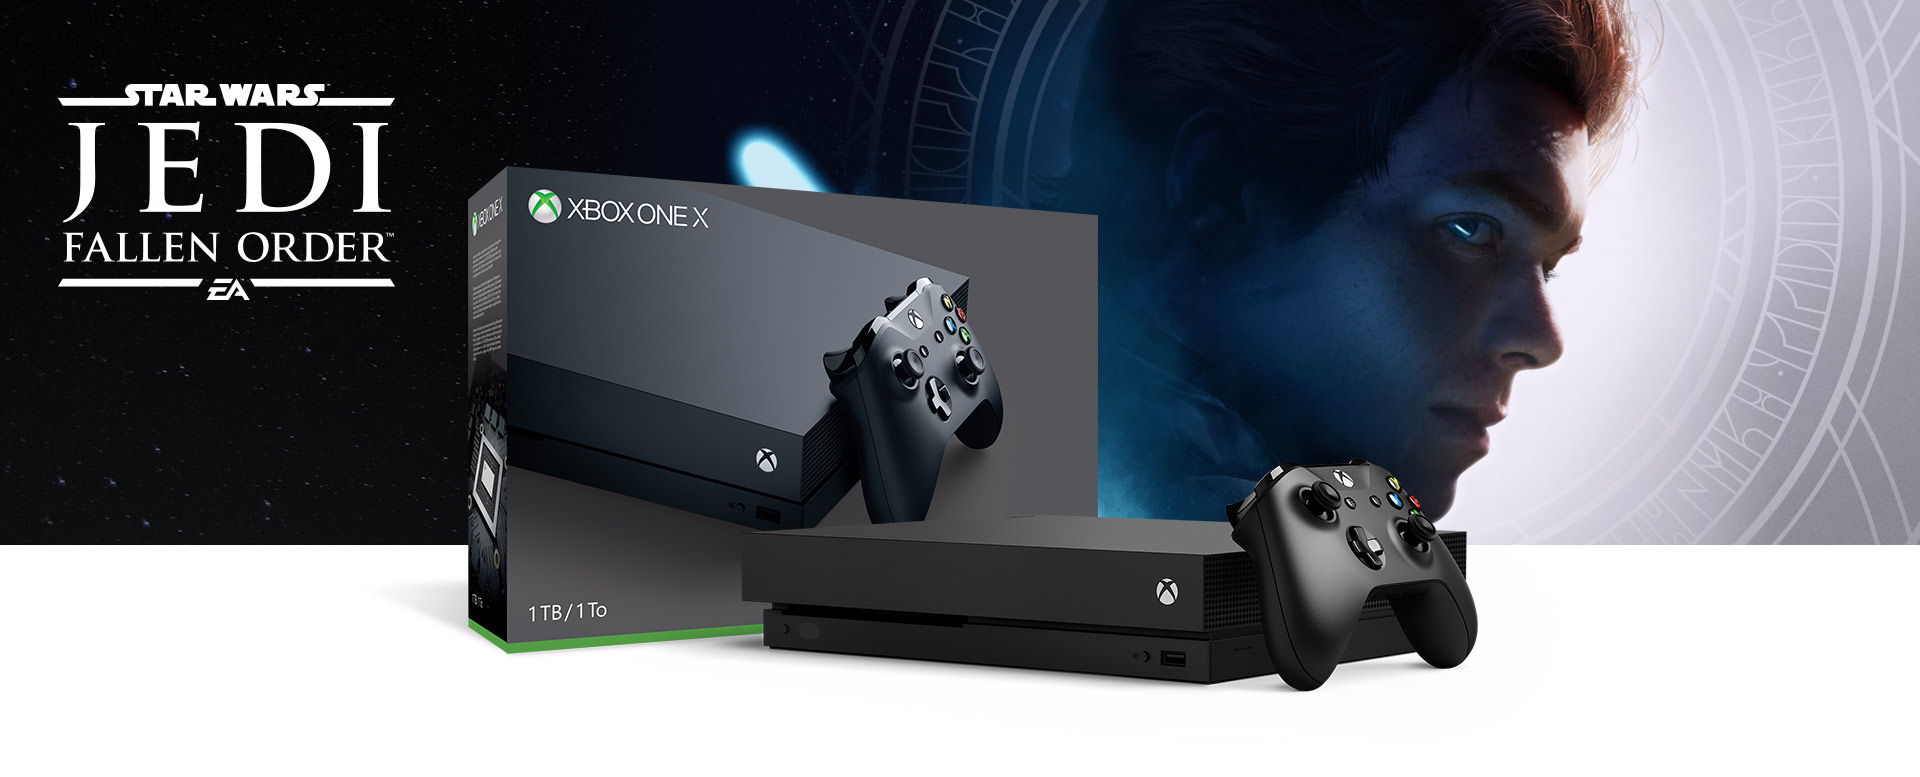 Xbox One X console in front of a hardware bundle box featuring Star Wars Jedi: Fallen Order Deluxe Edition art